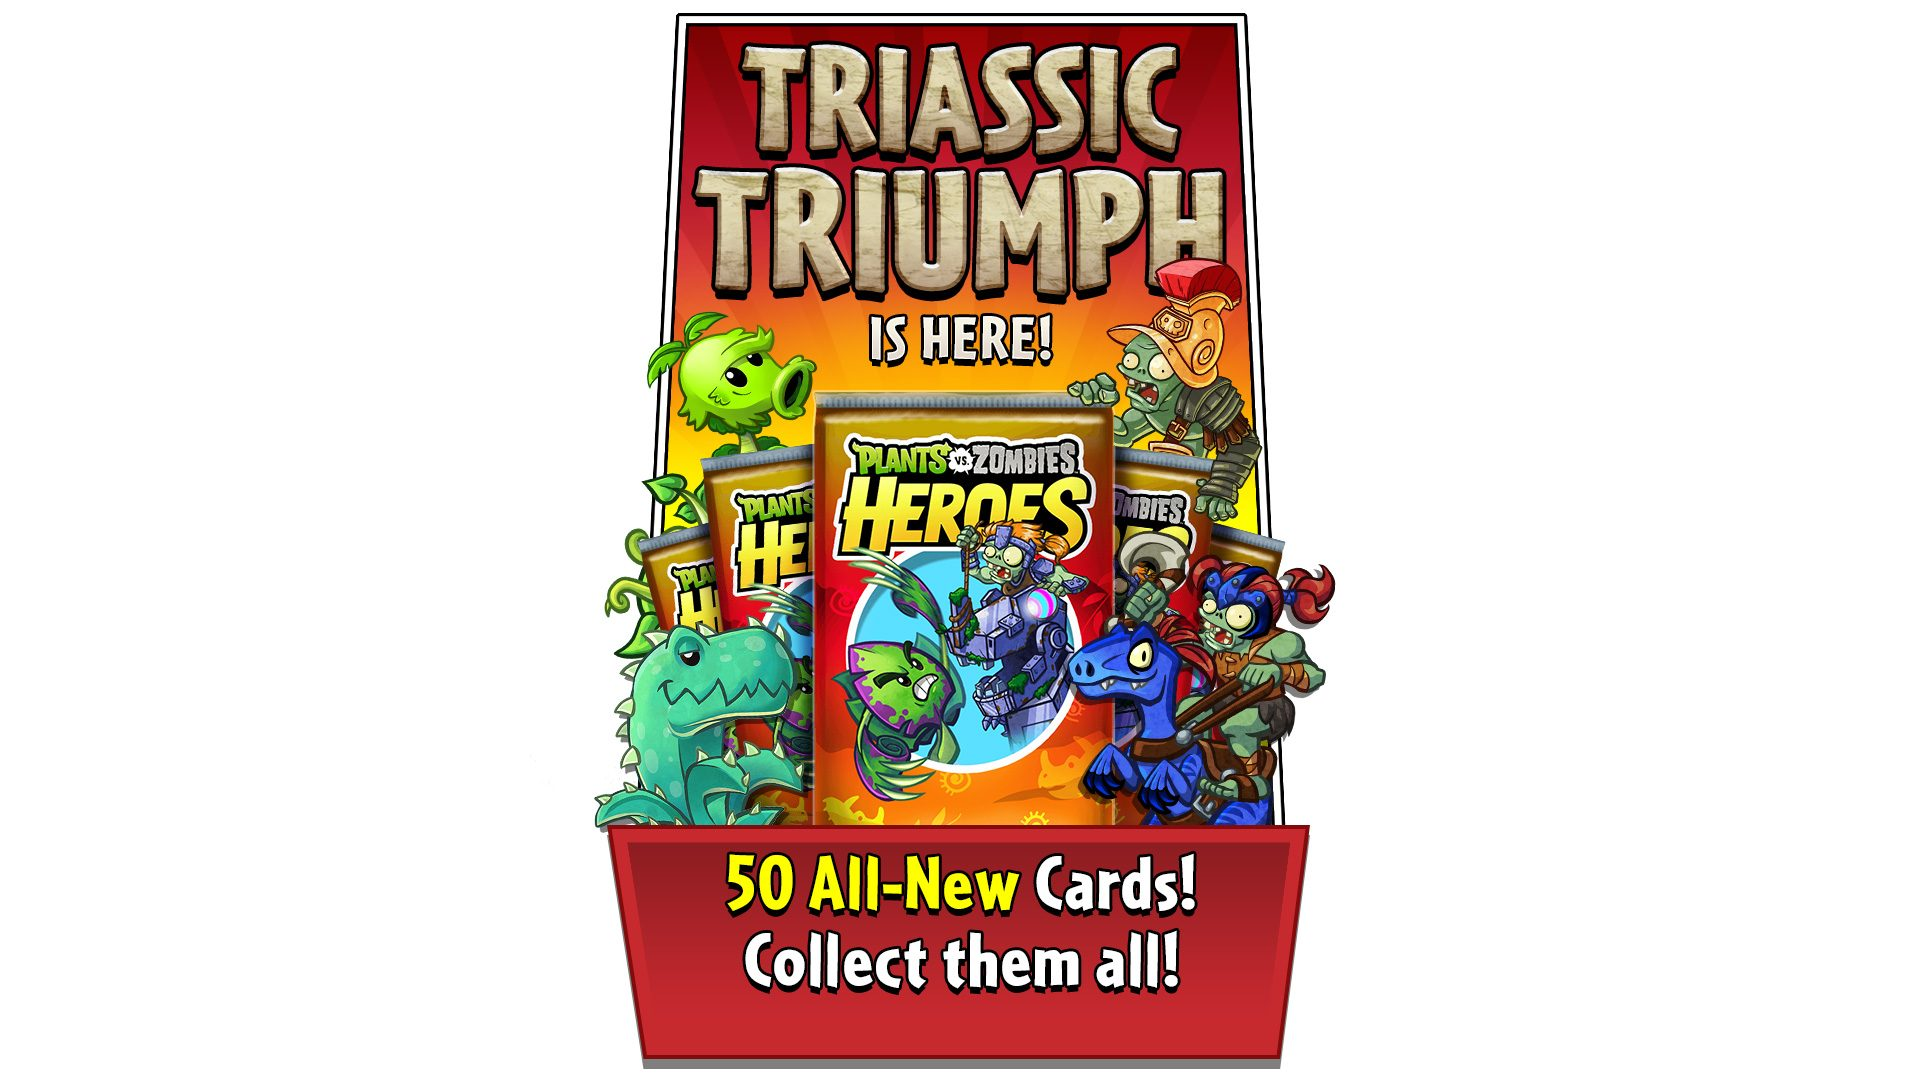 Triassic Triumph Arrives in Plants vs  Zombies Heroes